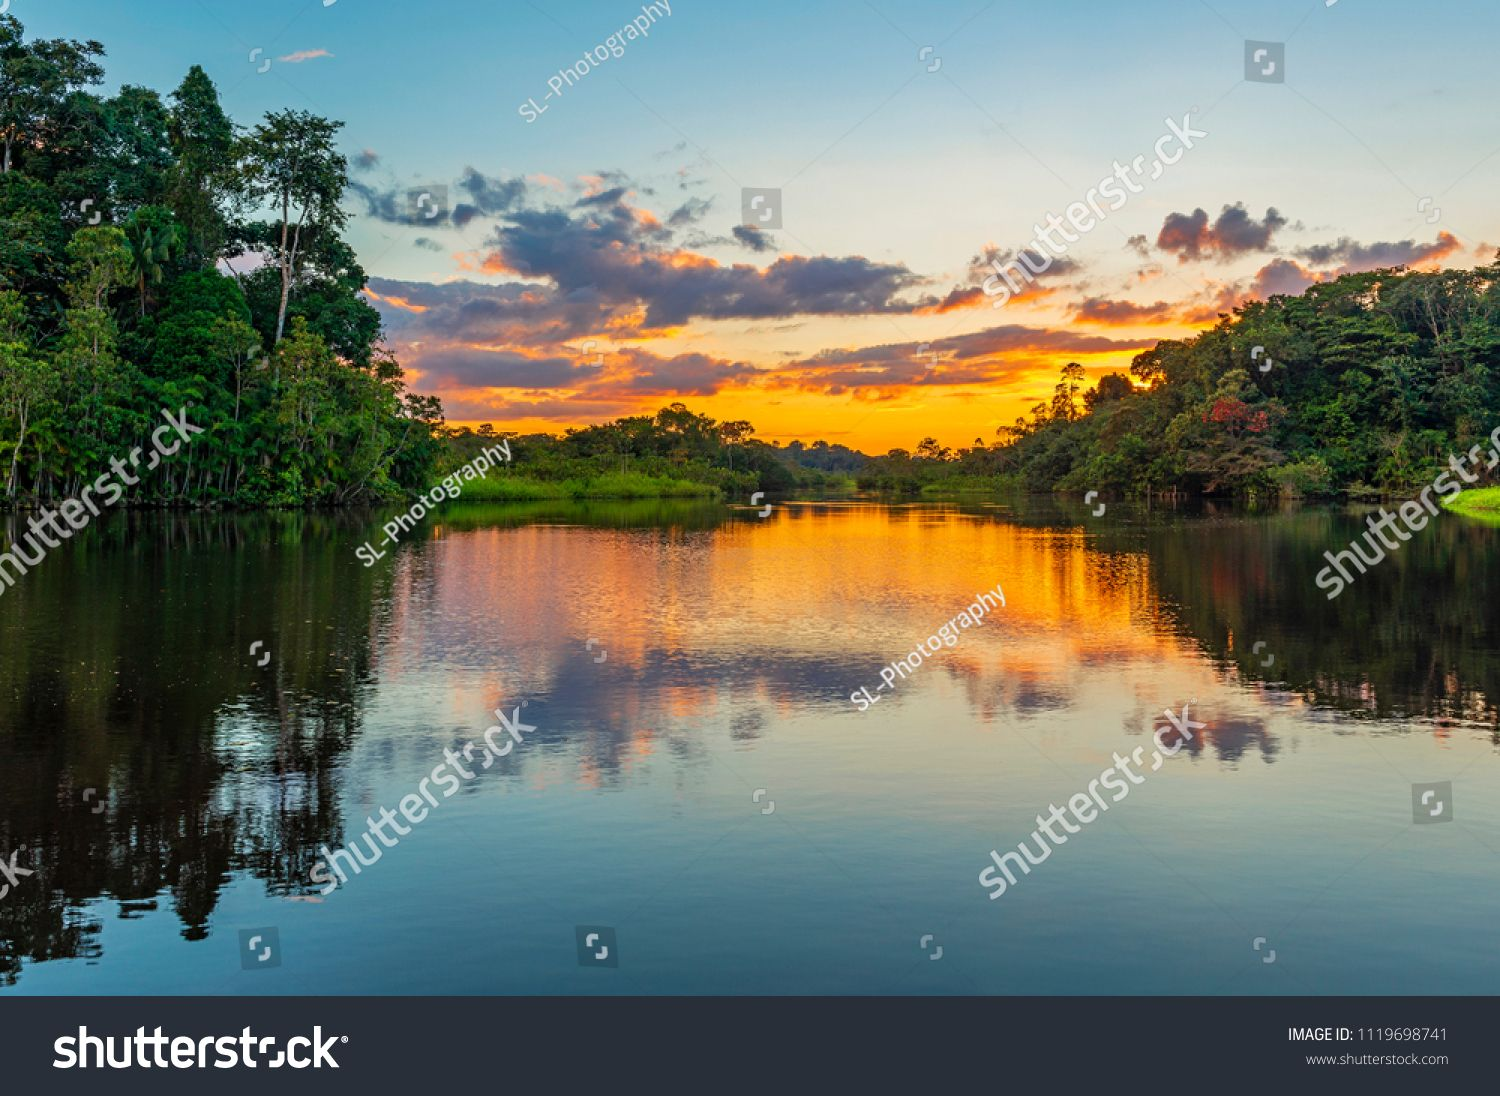 Reflection Of A Sunset By A Lagoon Inside The Amazon Rainforest